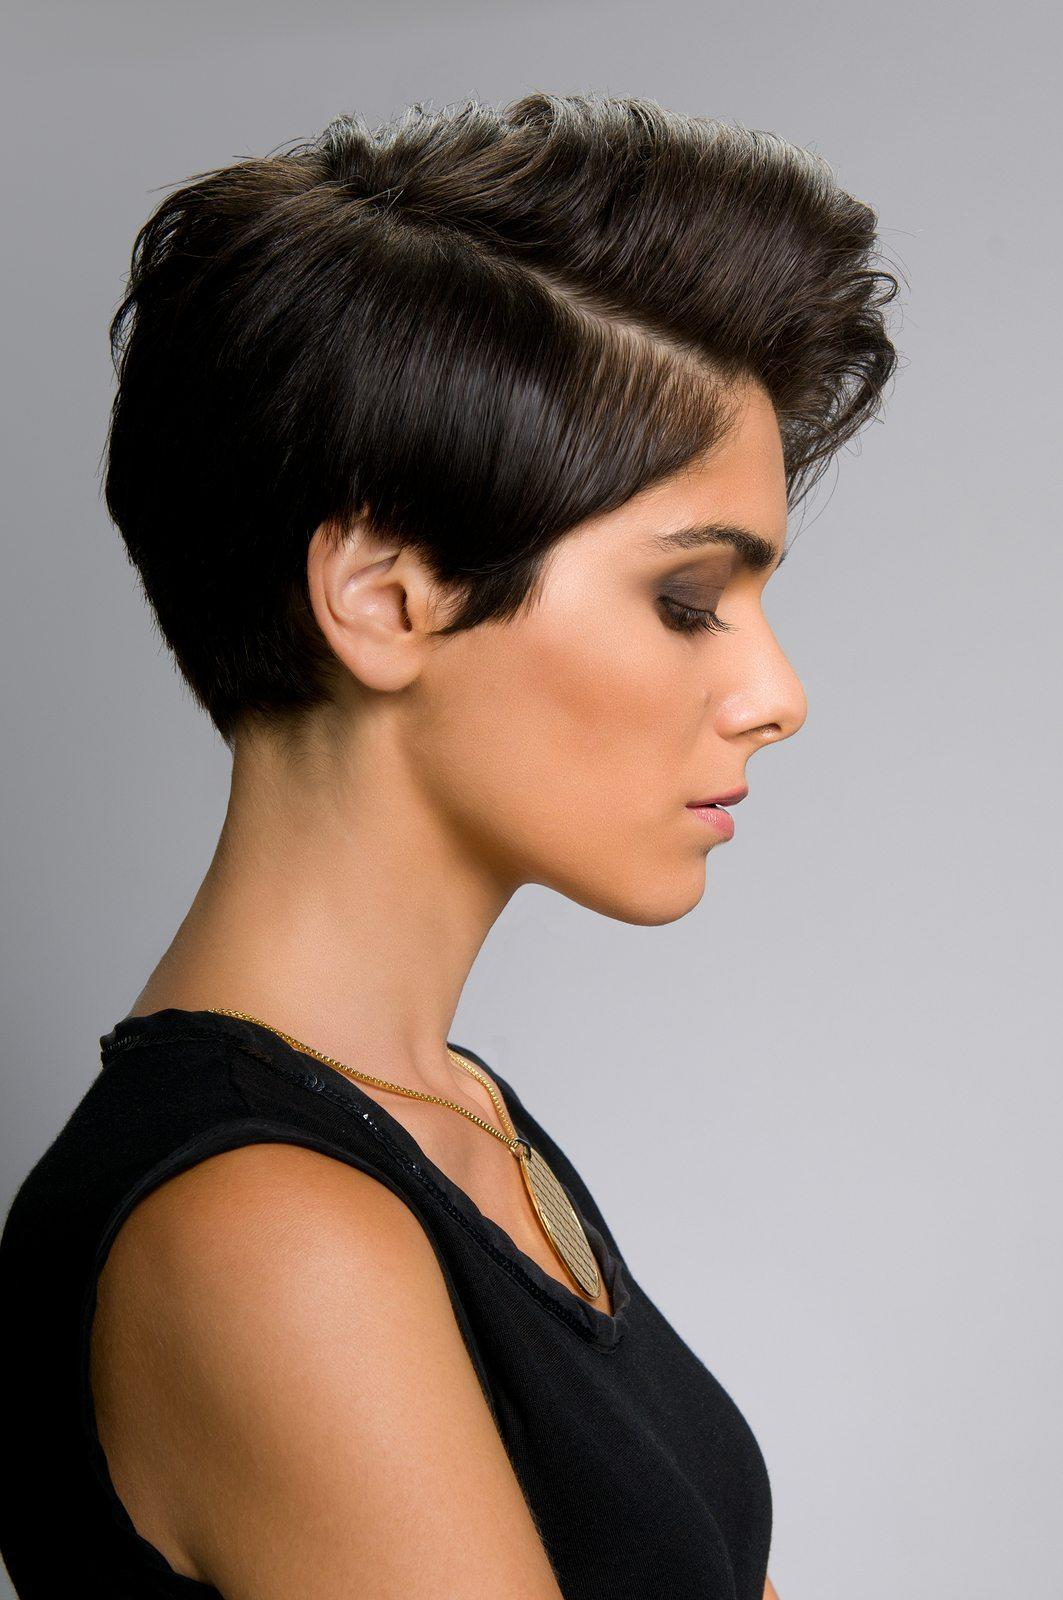 The Best Is A Pixie Cut Right For Me Michael Anthony Hair Salon Pictures